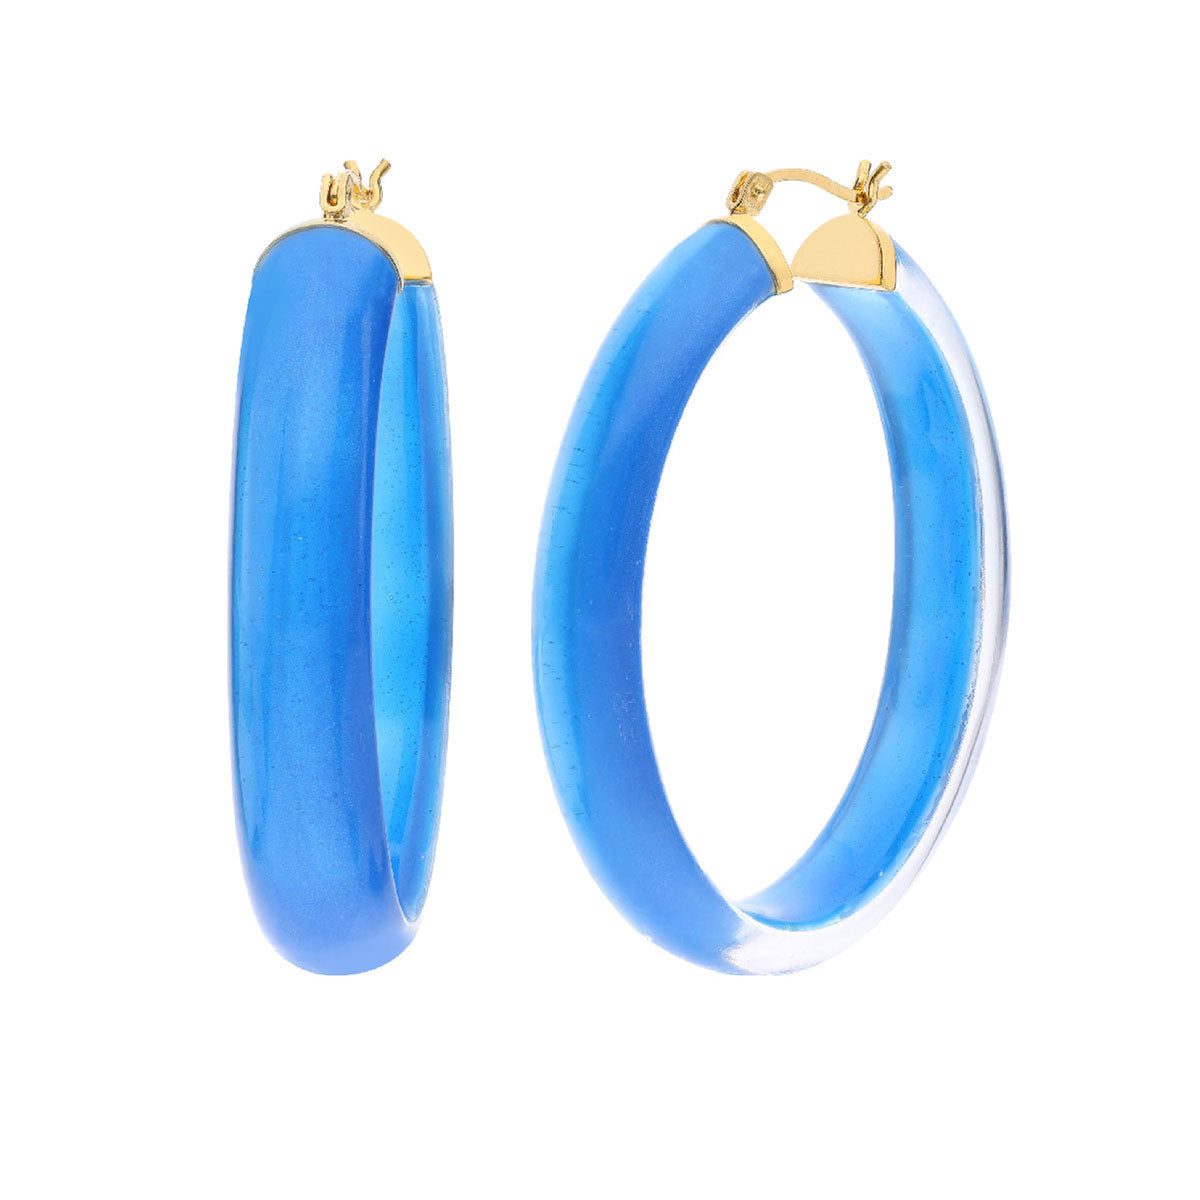 X-Large Illusion Oval Lucite Hoops